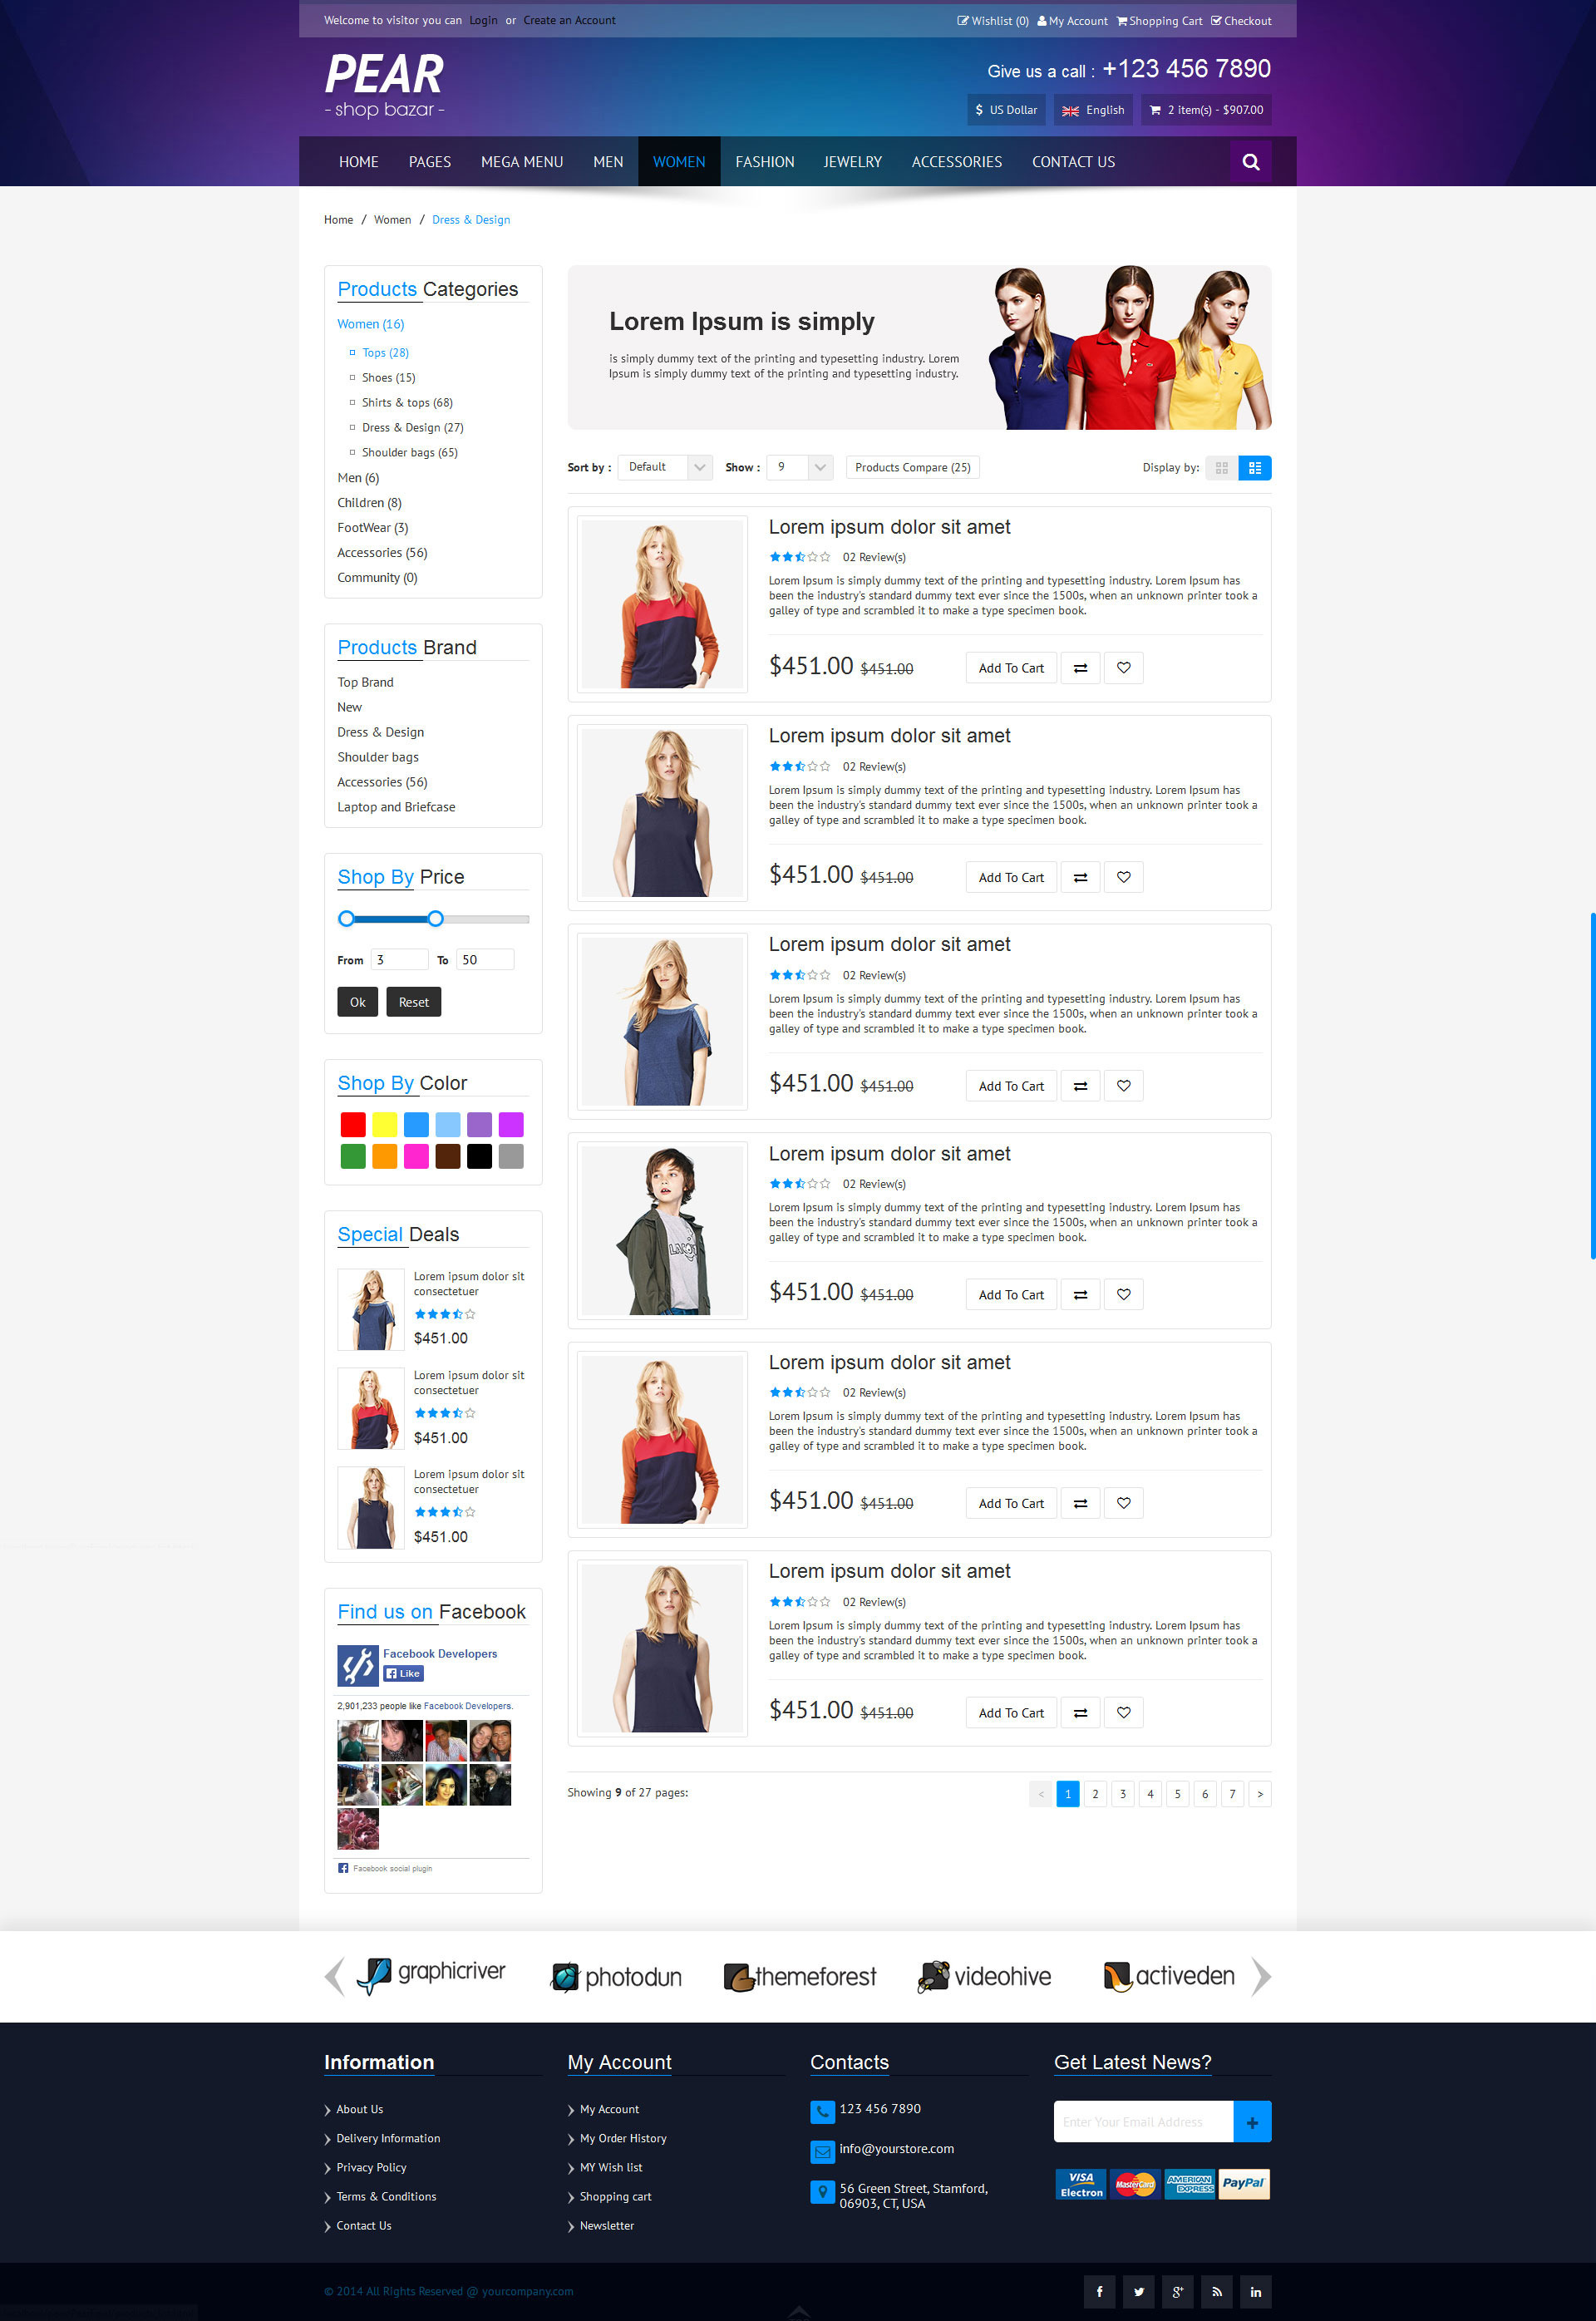 Pear - Responsive E-Commerce HTML Template V1.2 by wedothewebs ...